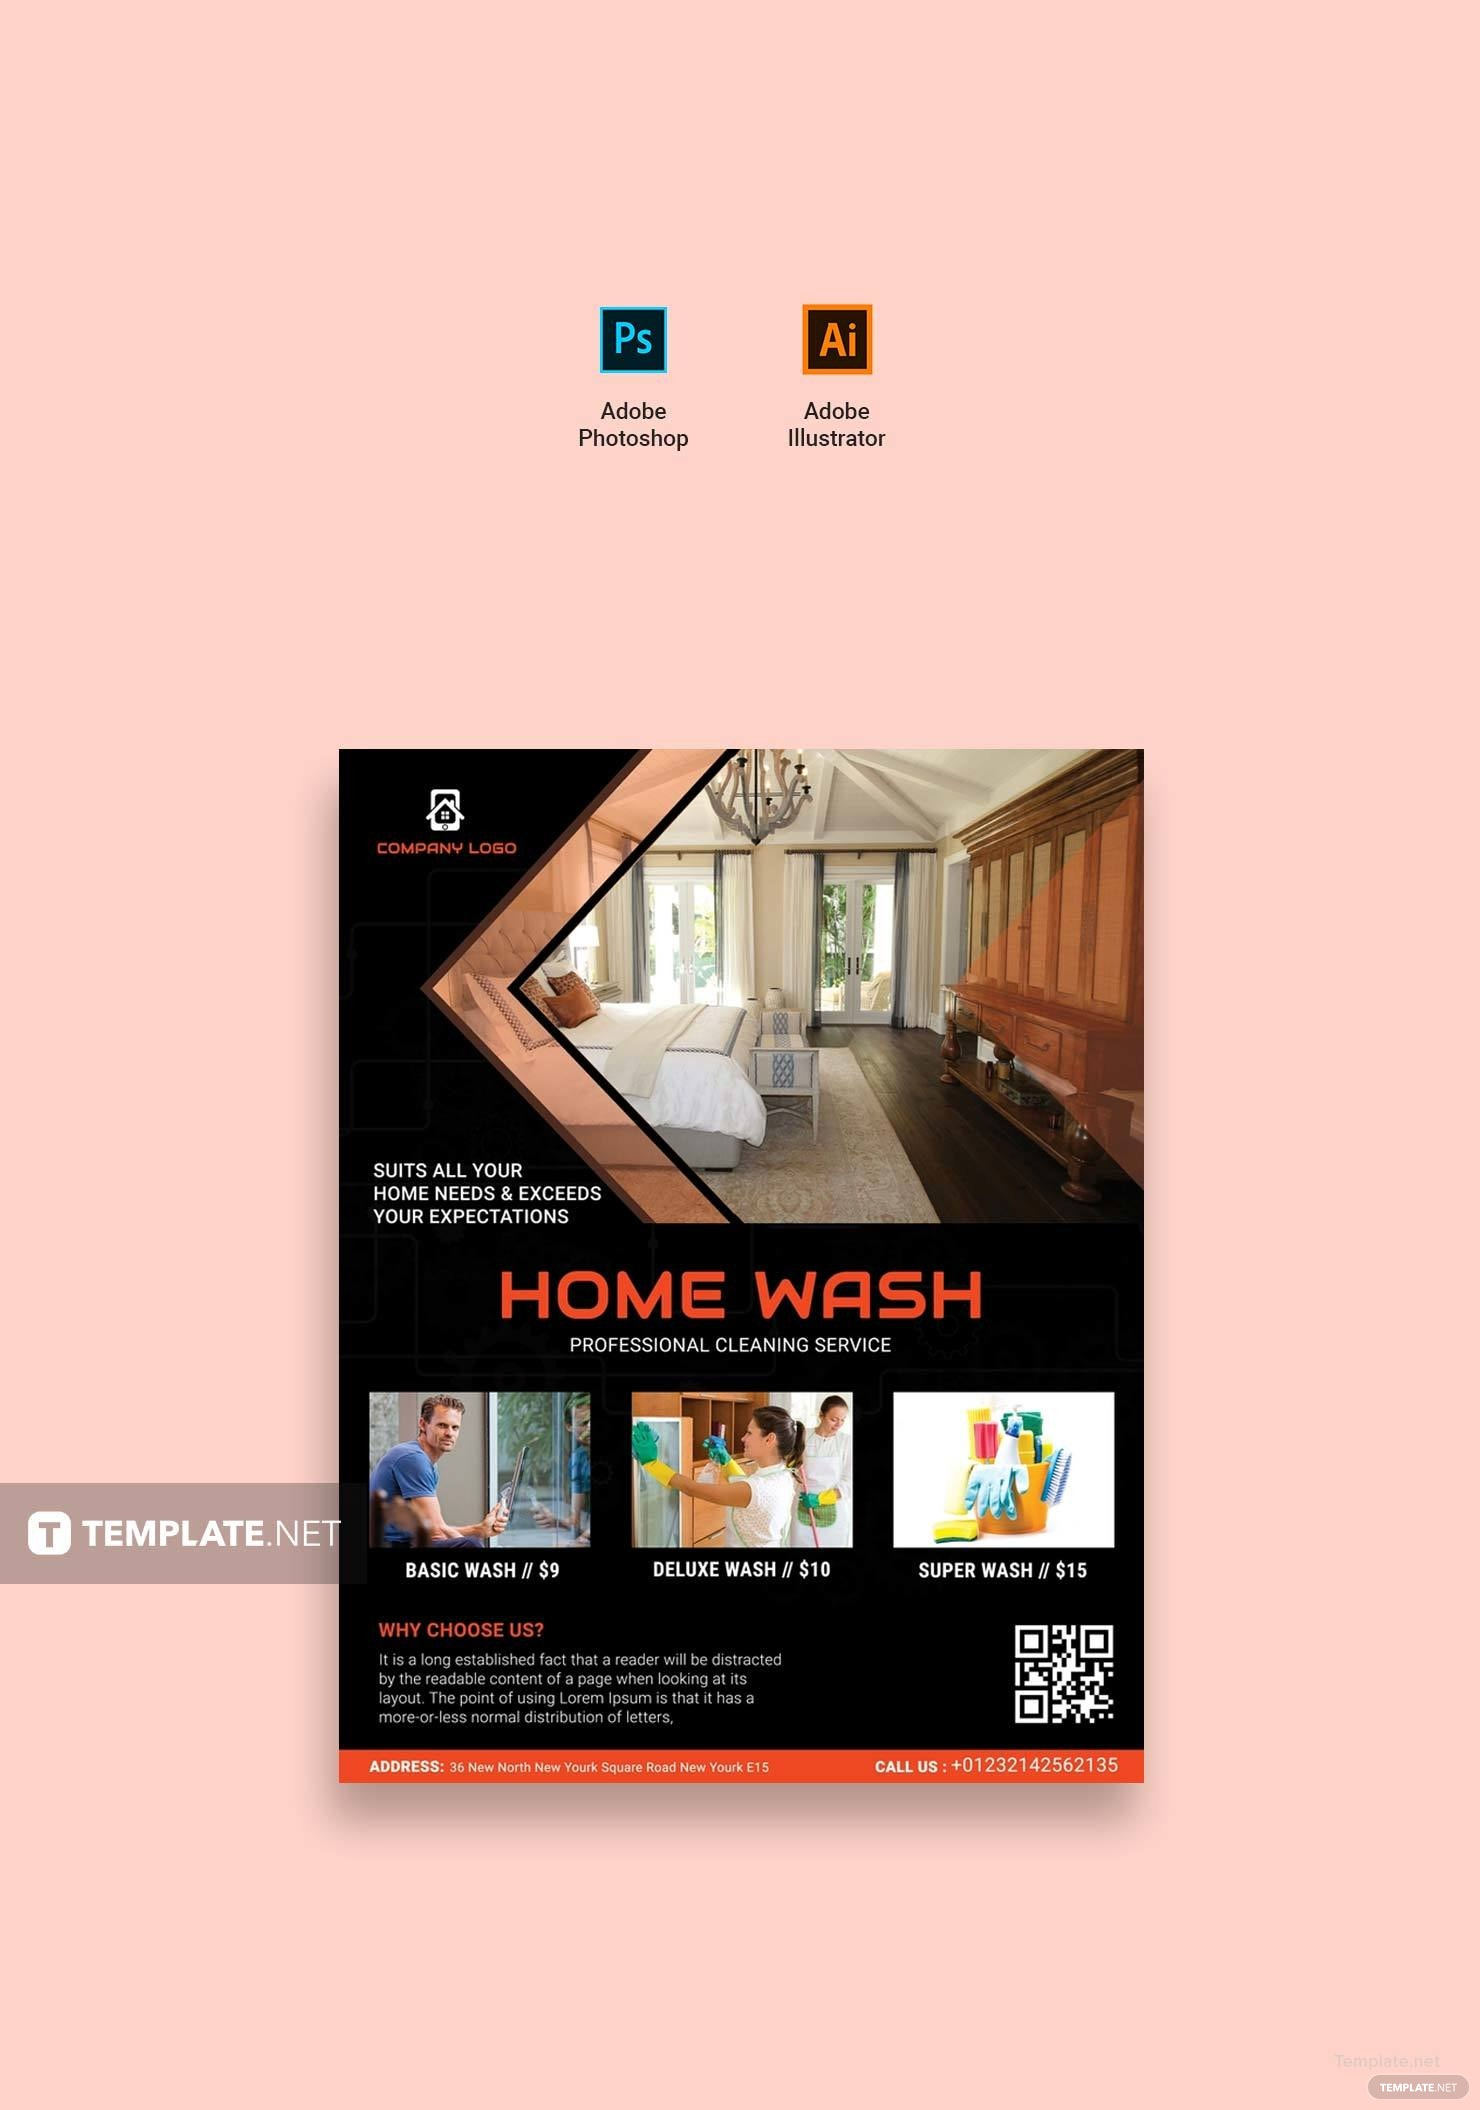 Free Home Cleaning Service Flyer Template In Adobe Photoshop - Adobe illustrator flyer template